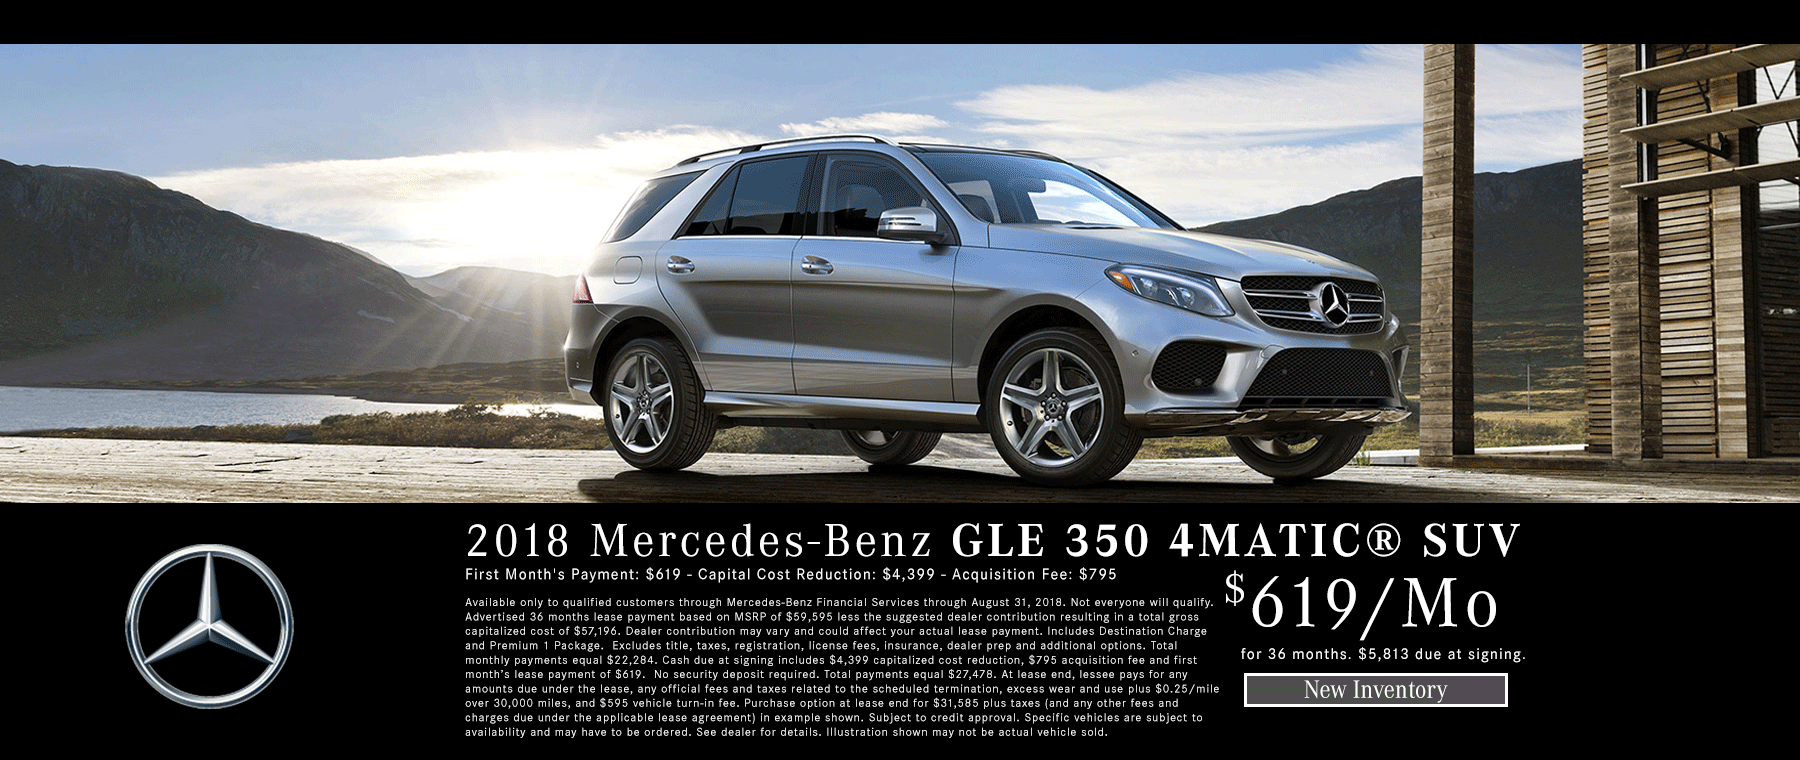 2018 Mercedes Benz GLE 350 4MATIC SUV For Sale Near Nampa